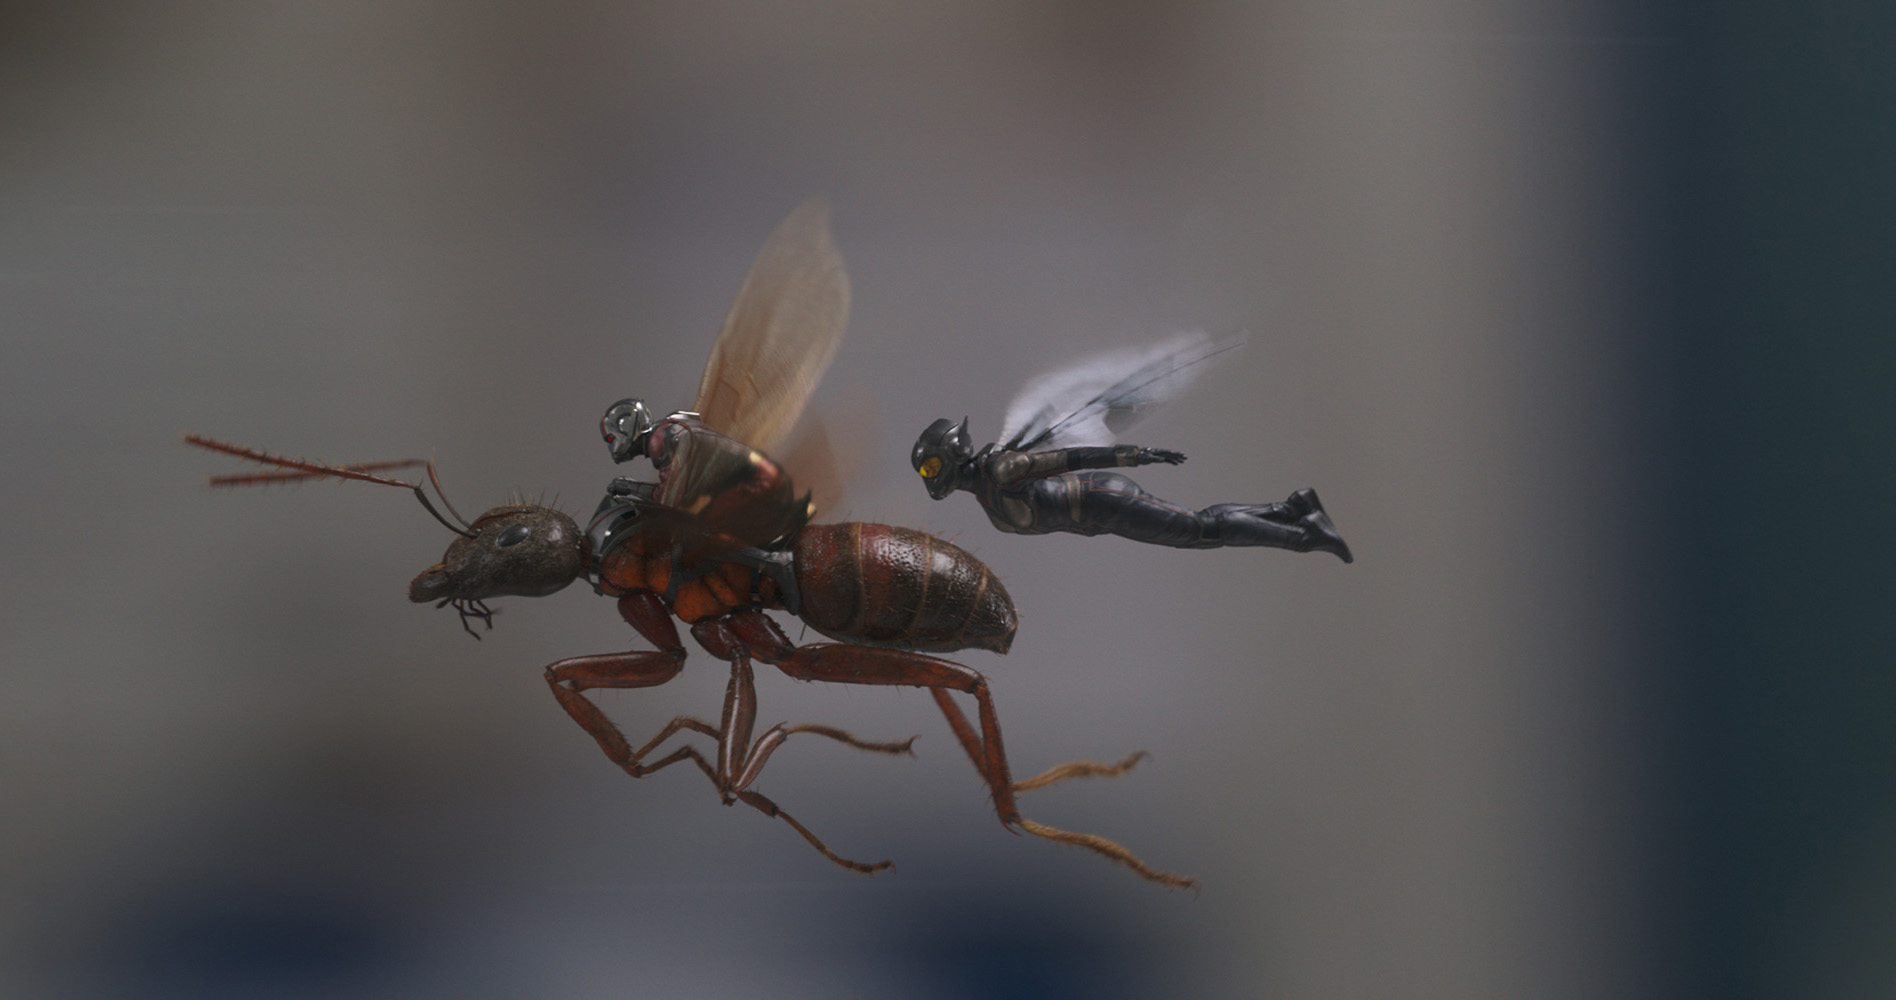 Ant-Man and The Wasp flying together